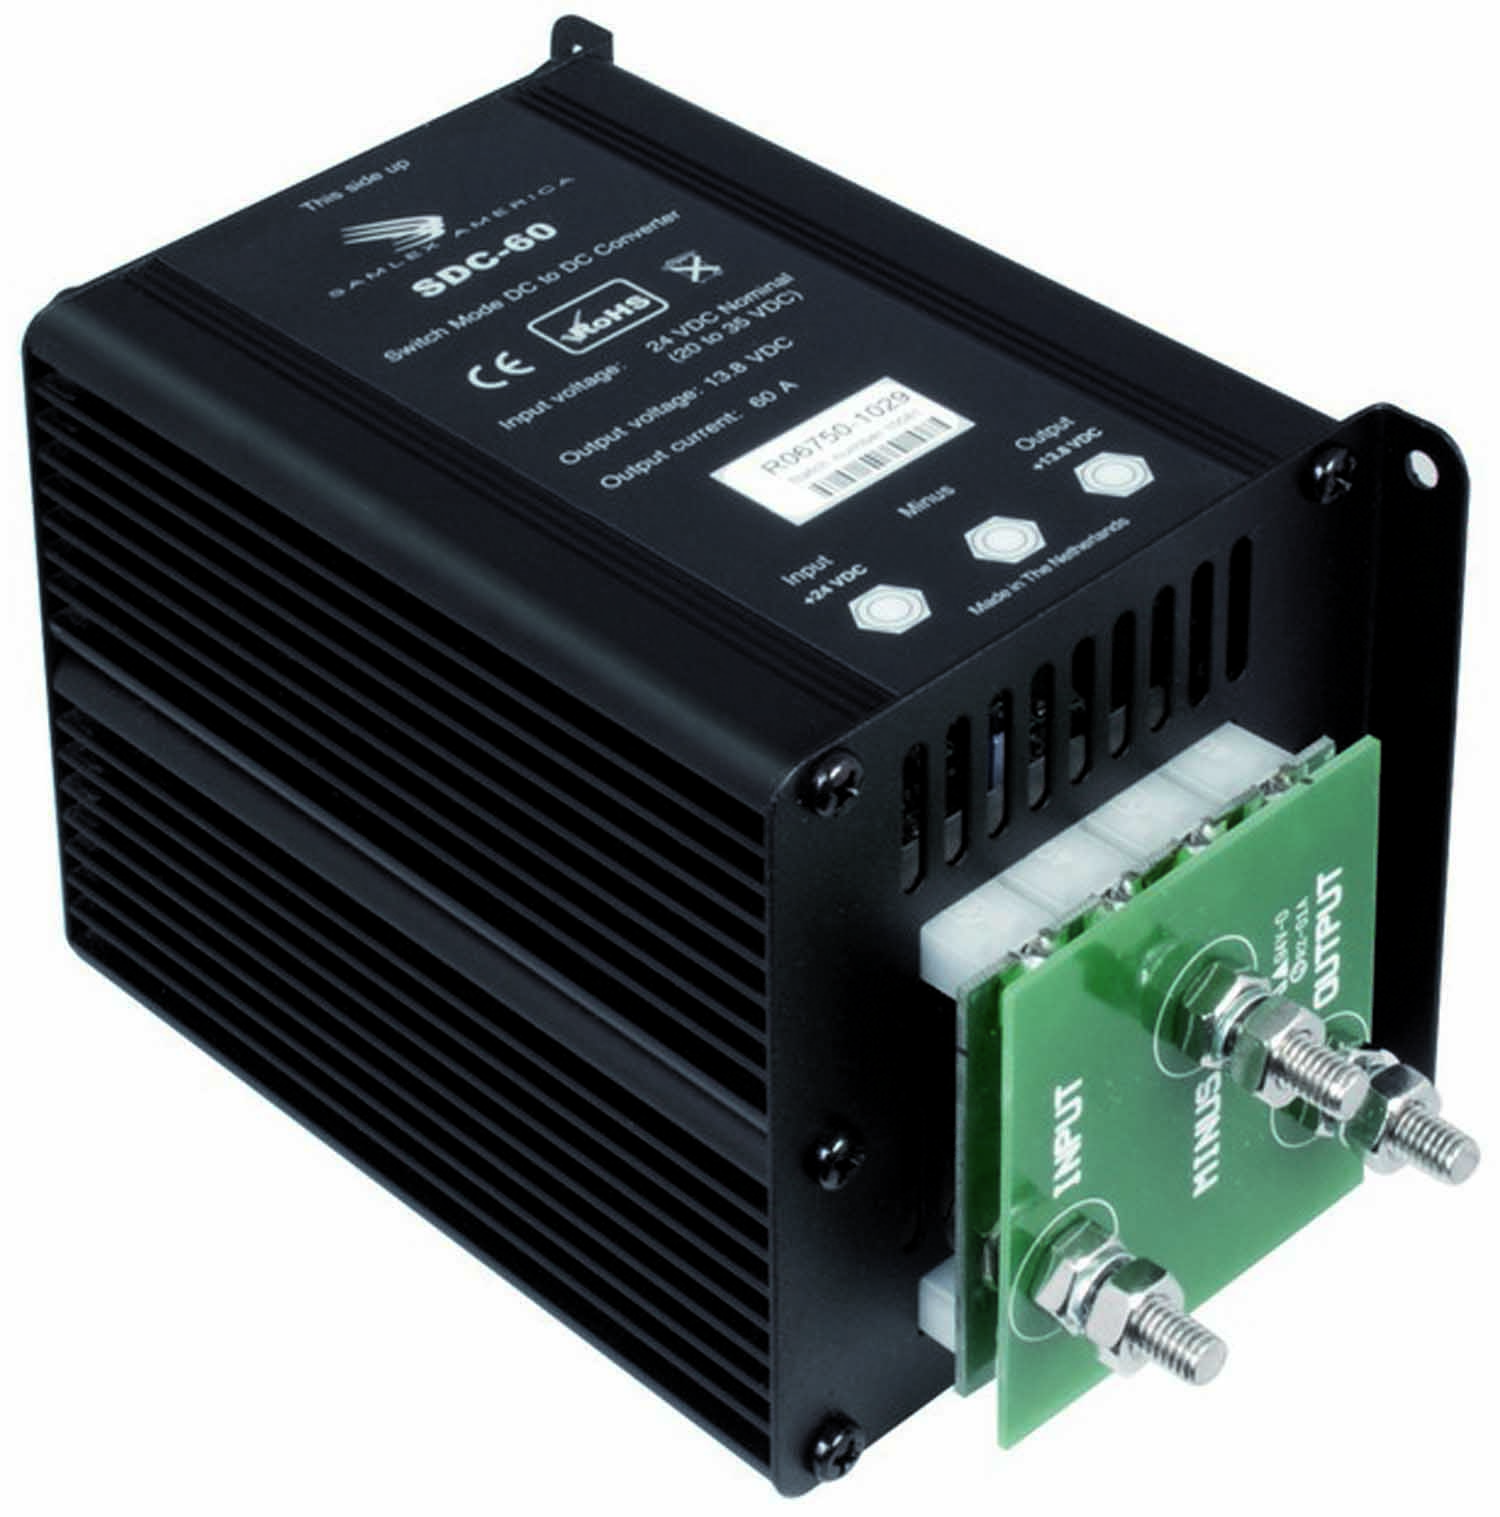 SDC60 - SAMLEX - SDC60 HIGH EFFICIENCY SWITCH MODE STEP DOWN DC-DC CONVERTER  - CONVERTS 24 VDC TO 12 VDC